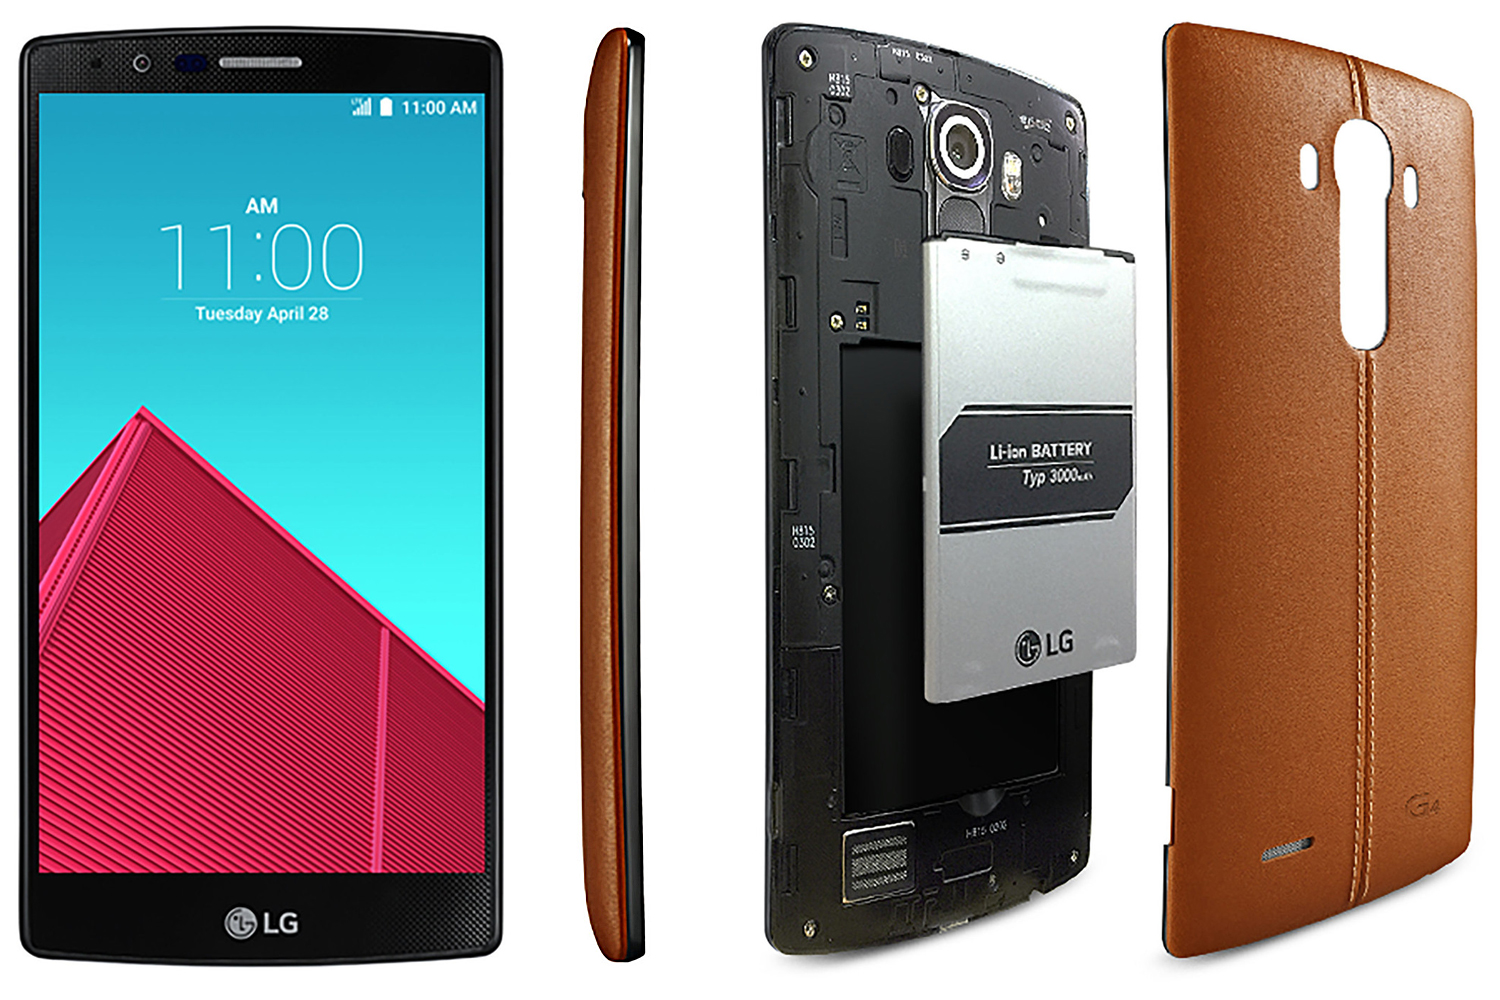 A sneak peek into the LG G4